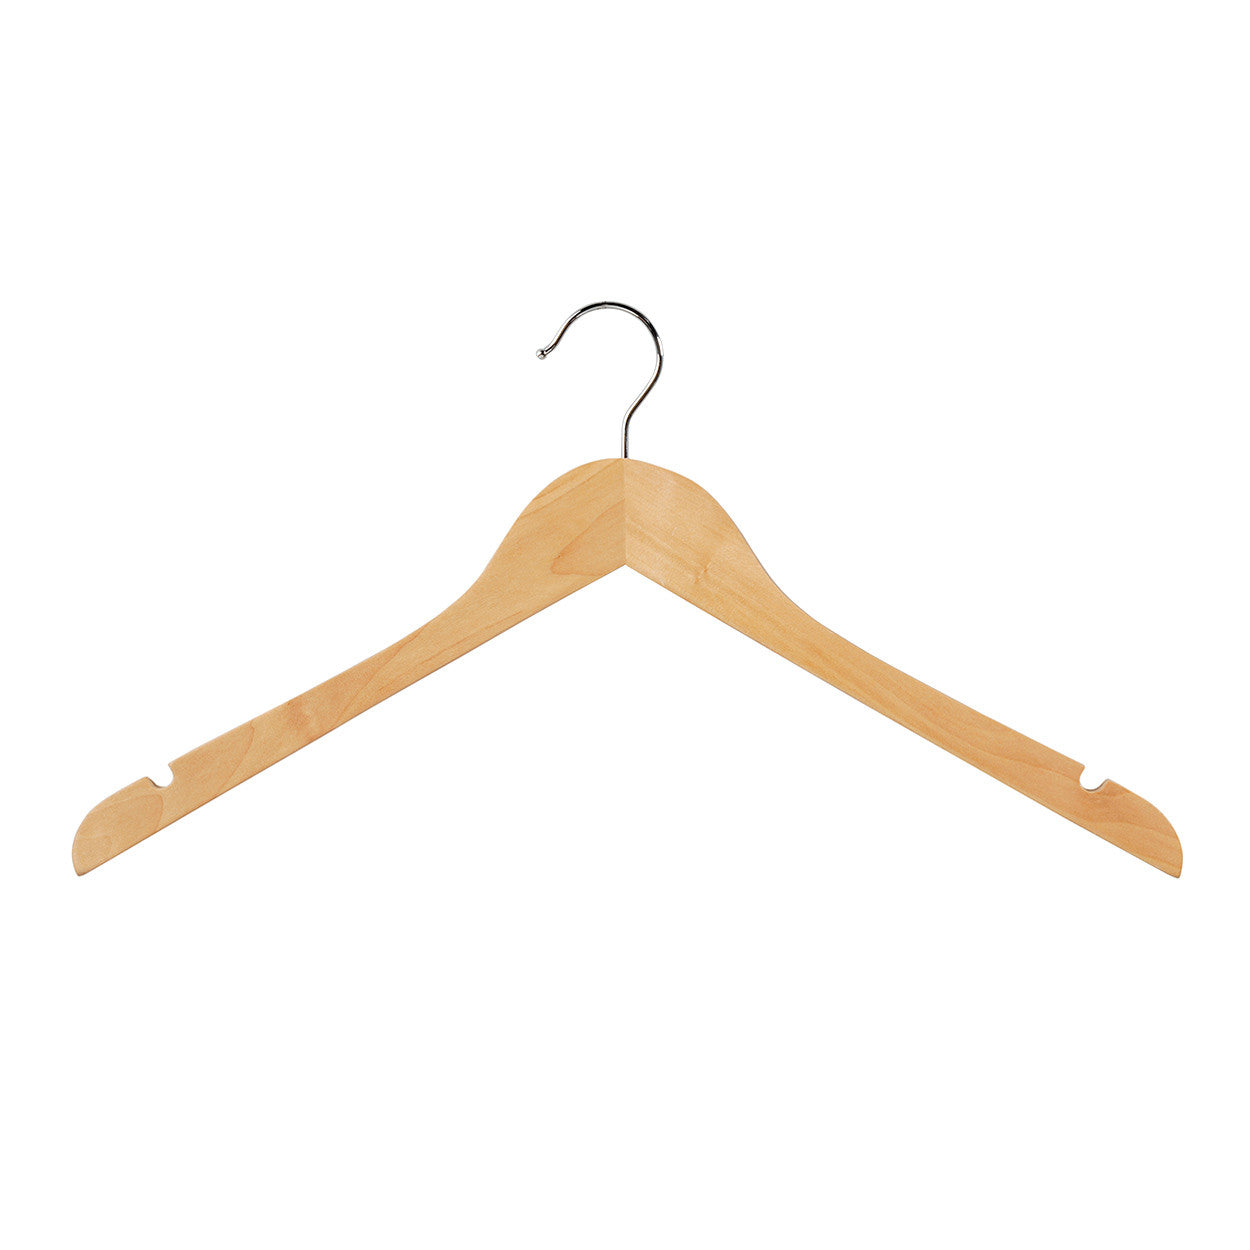 Beech Top Timber Wishbone Hanger With Notches 440 W X 14Mm Thick Beech (Bundle of 10)